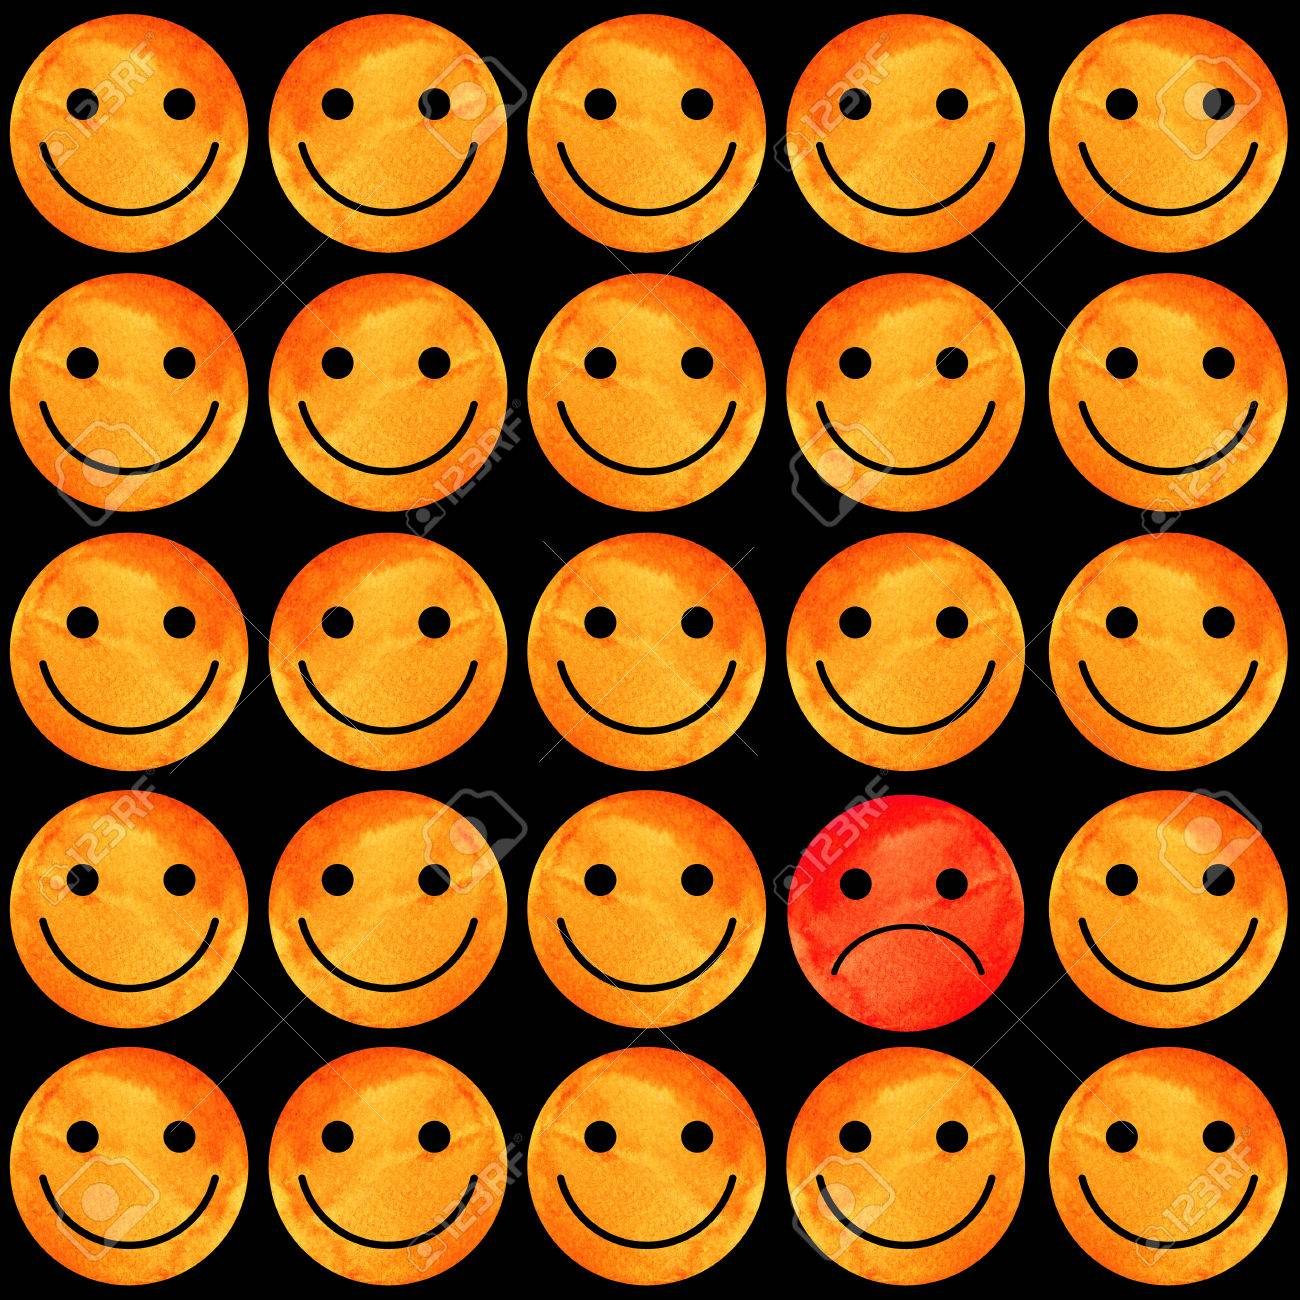 Crowd Of Smiling Emoticons Smiles Icon Pattern Modern Pattern Stock Photo Picture And Royalty Free Image Image 71346040